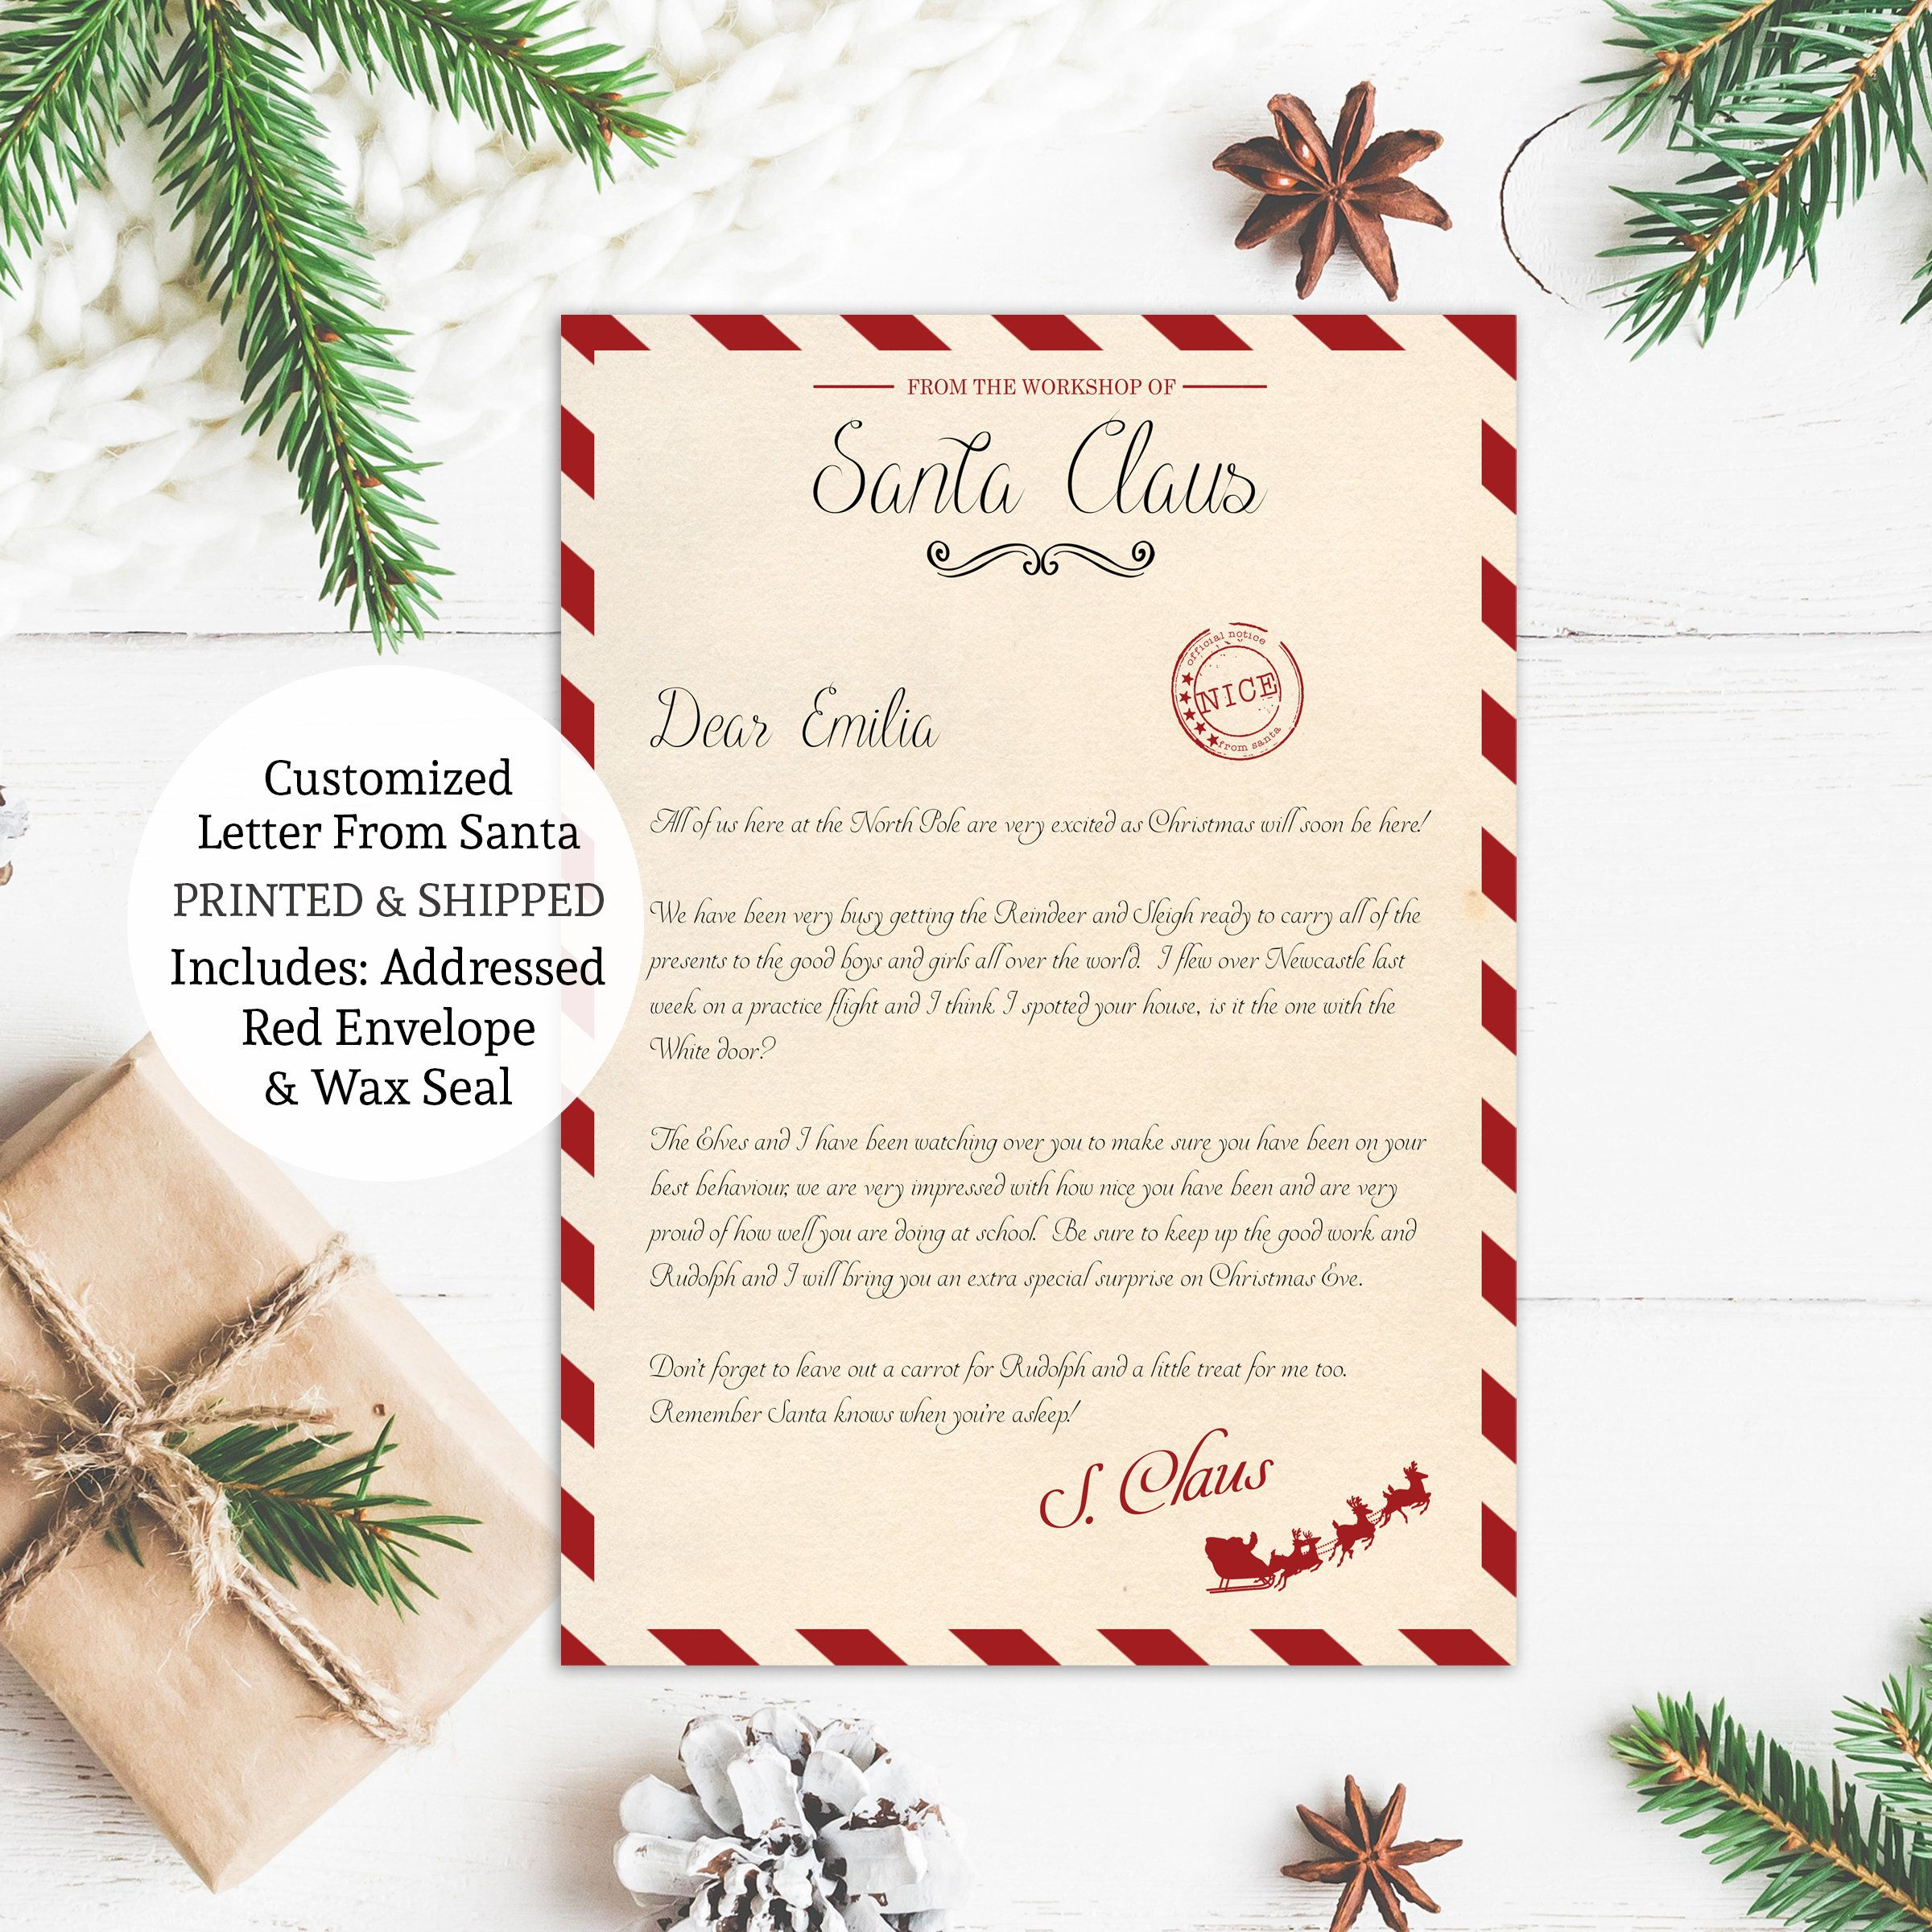 Personalized Letter from Santa Claus Christmas Santa